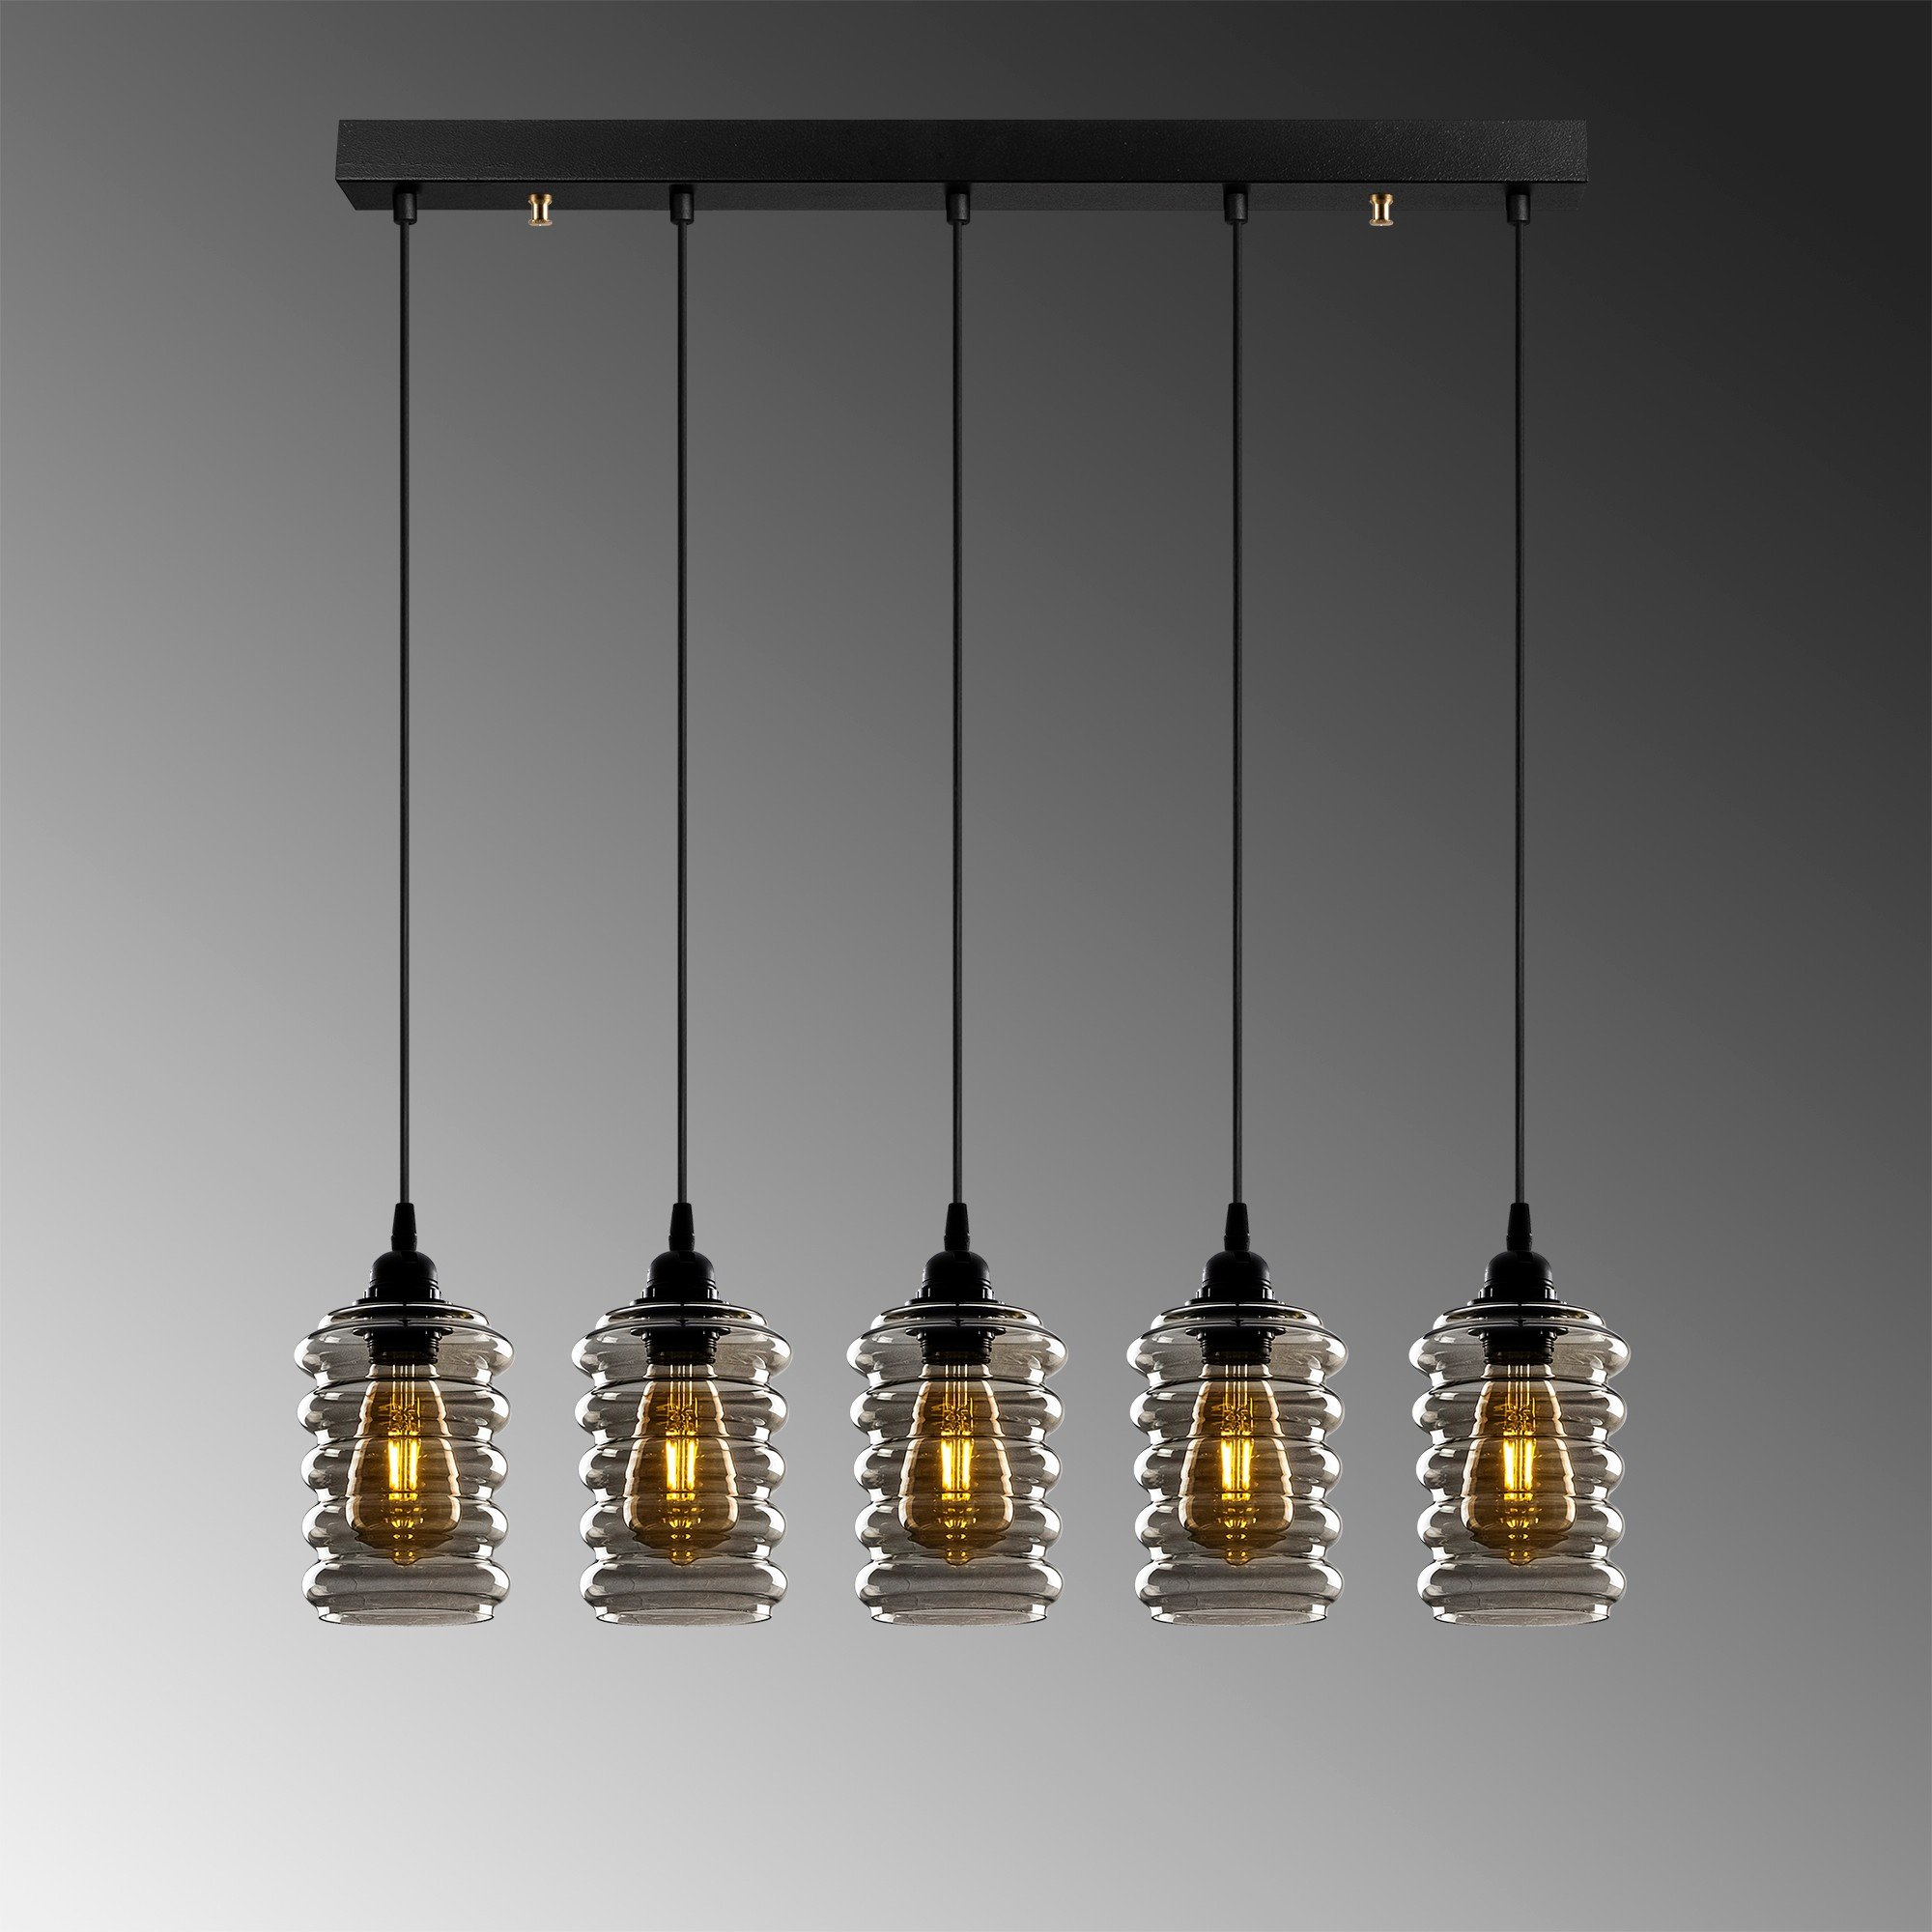 Hanglamp smoked glass 5 x E27 fitting - grijze achtergrond